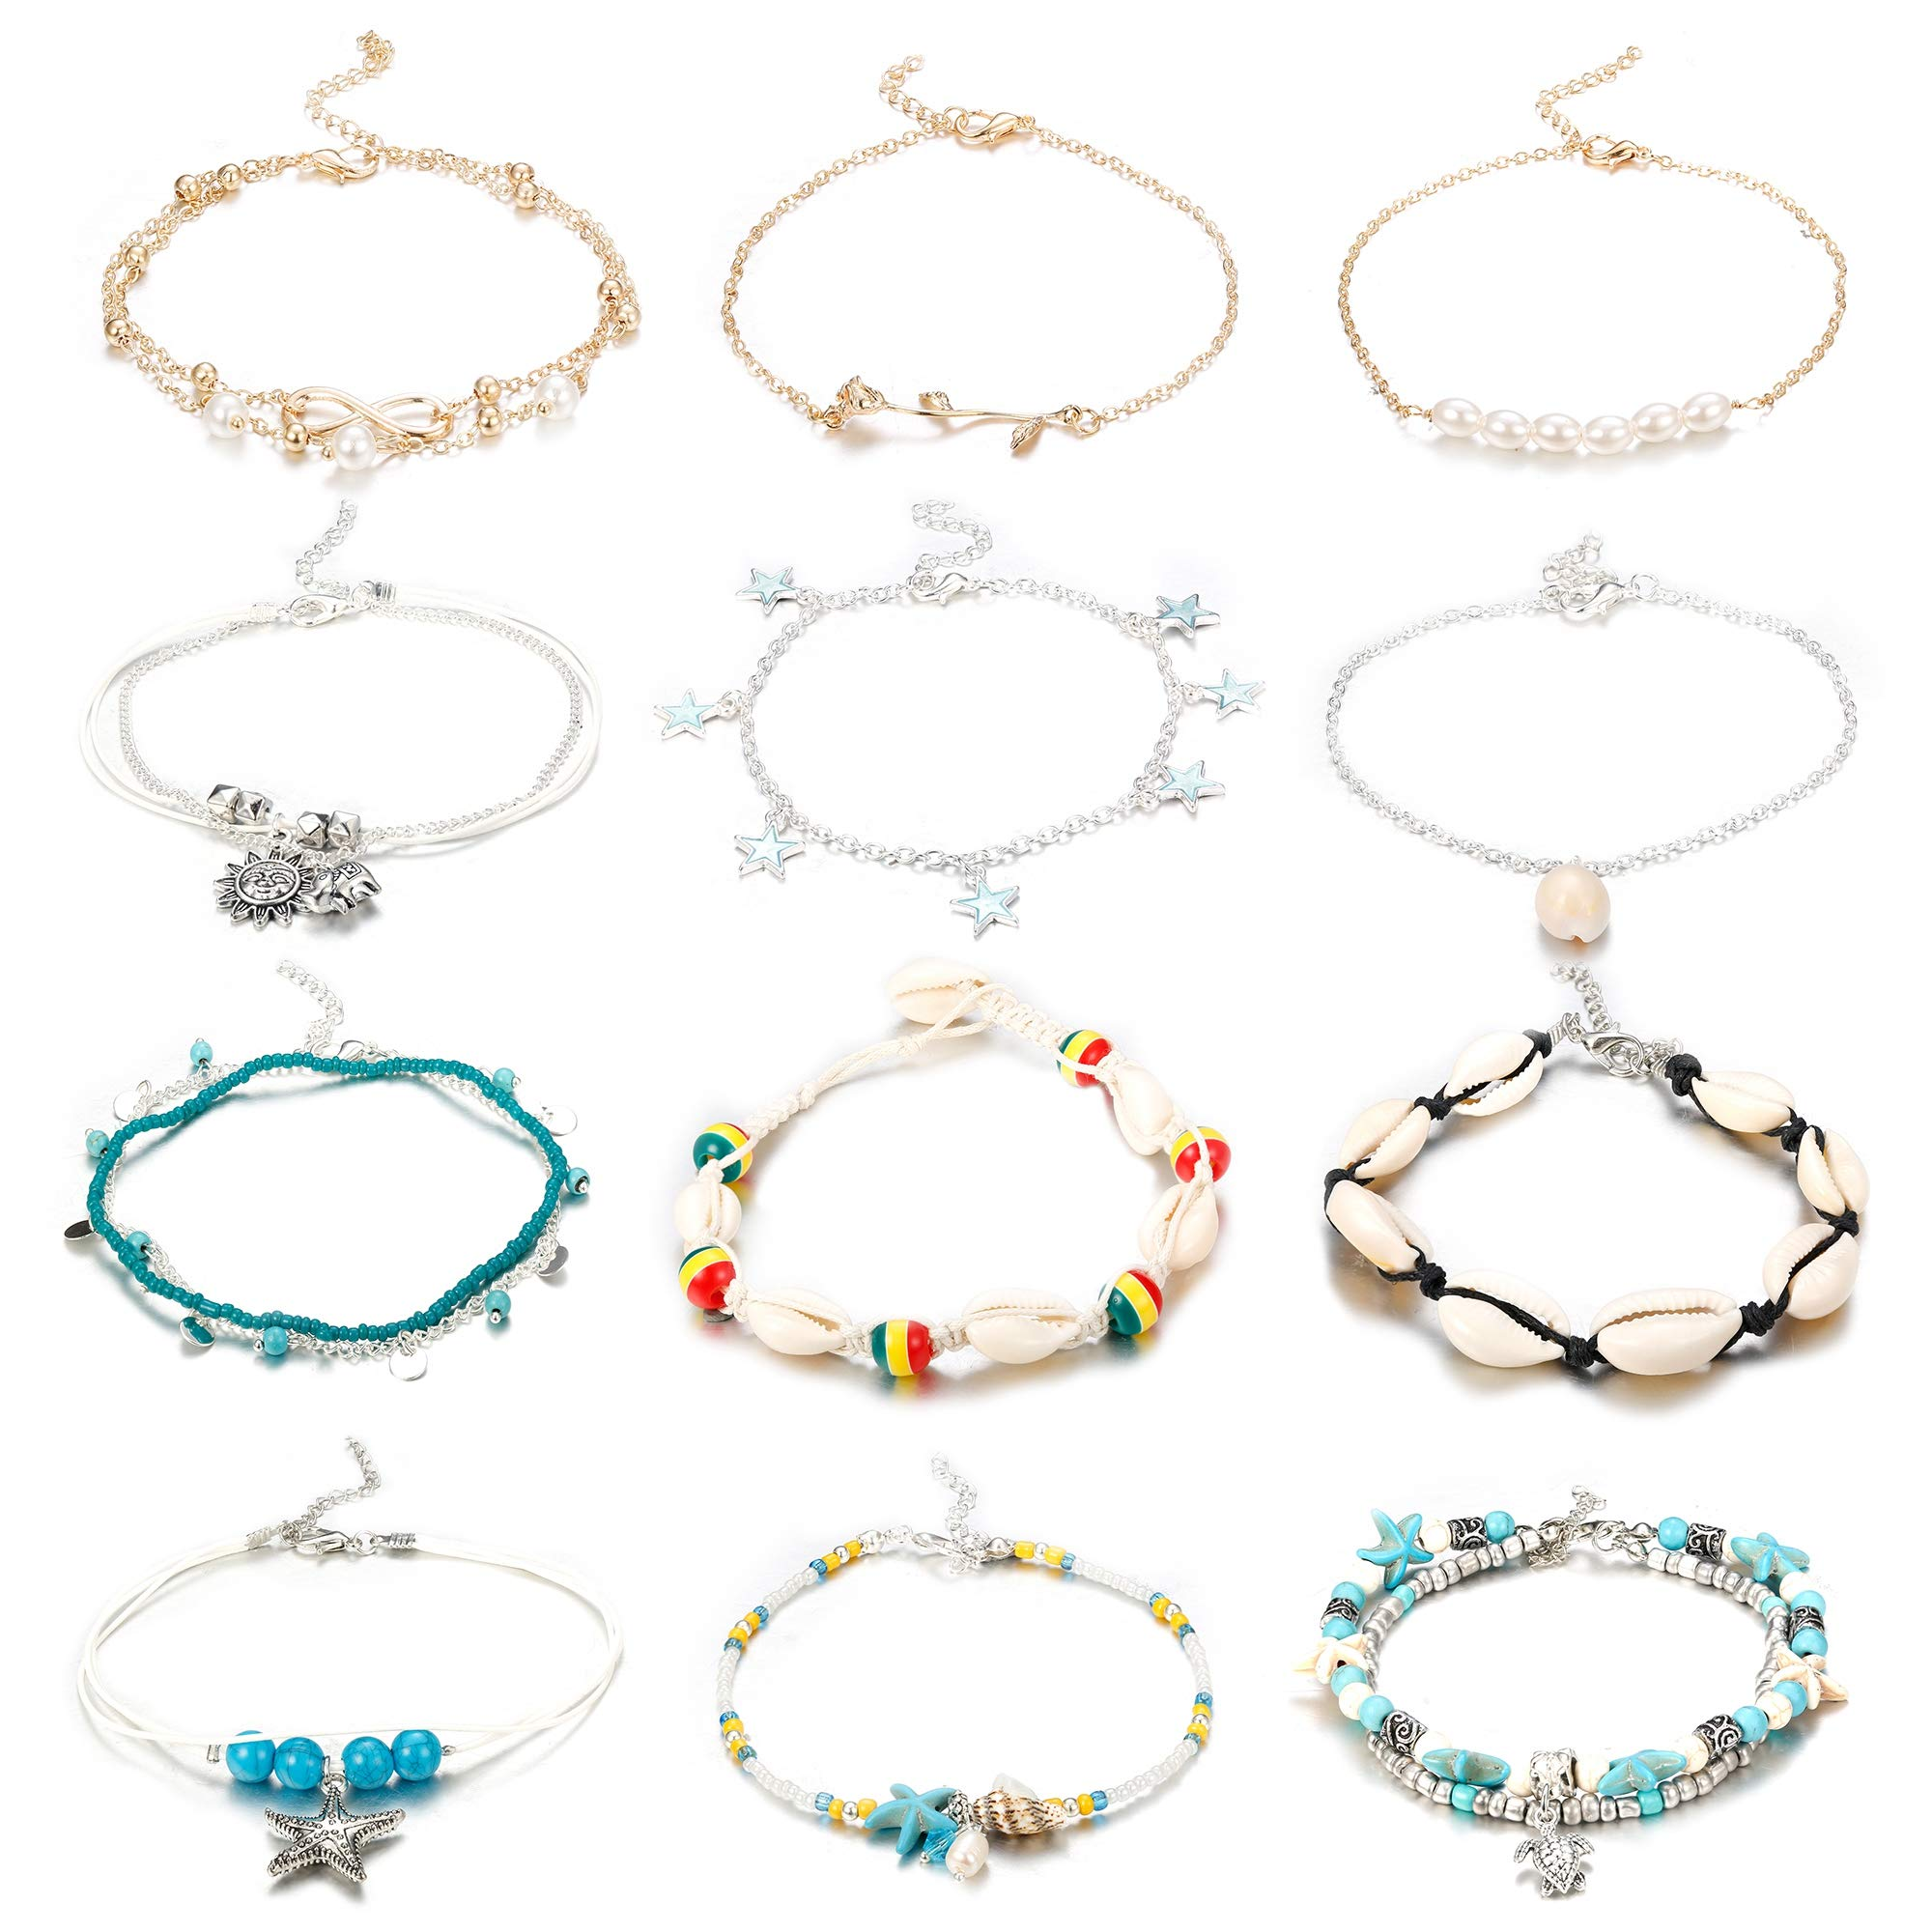 Finrezio 12PCS Anklets for Women Girls Blue Starfish Turtle Elephant Charm Ankle Bracelets Multilayer Gold Silver Plated Foot Jewelry Handmade